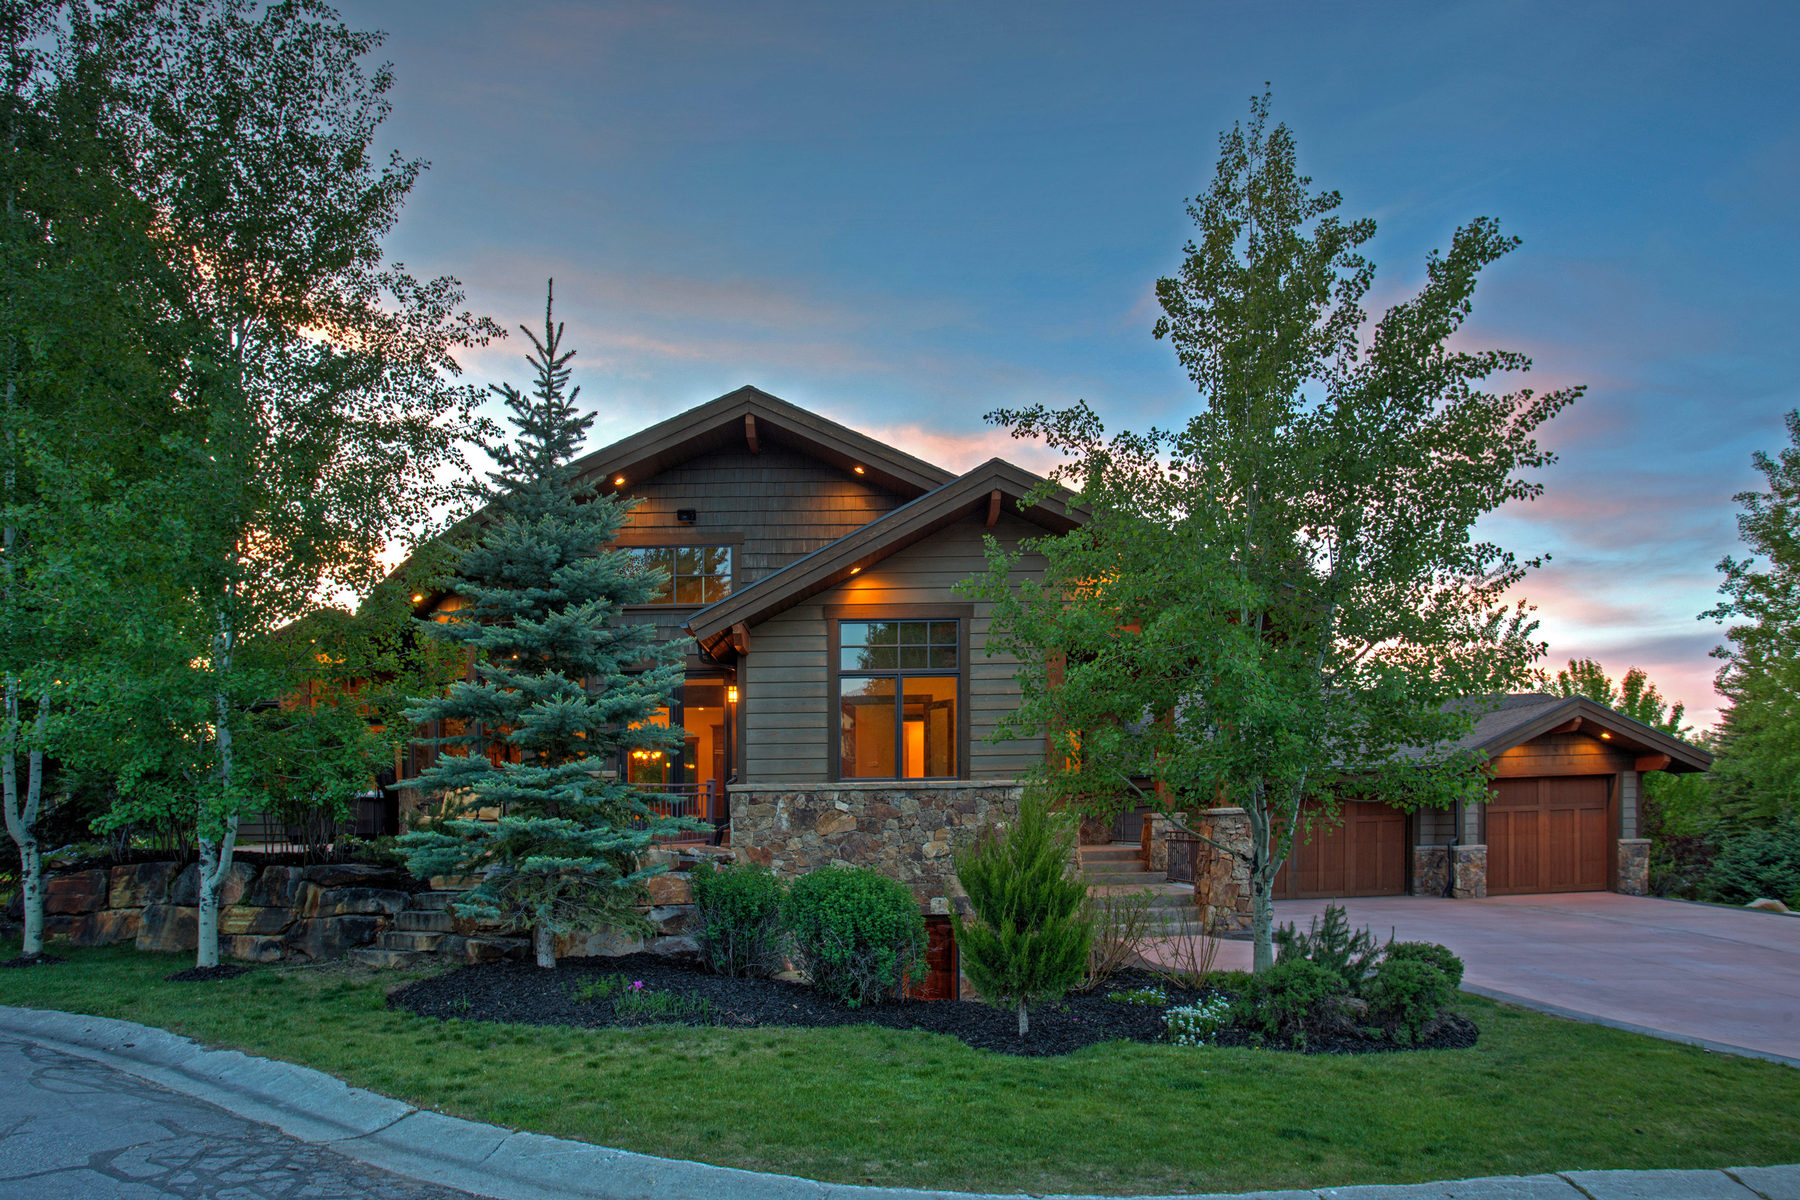 Single Family Home for Sale at Refined Mountain Living In Town 2 Double Jack Ct Park City, Utah 84060 United States